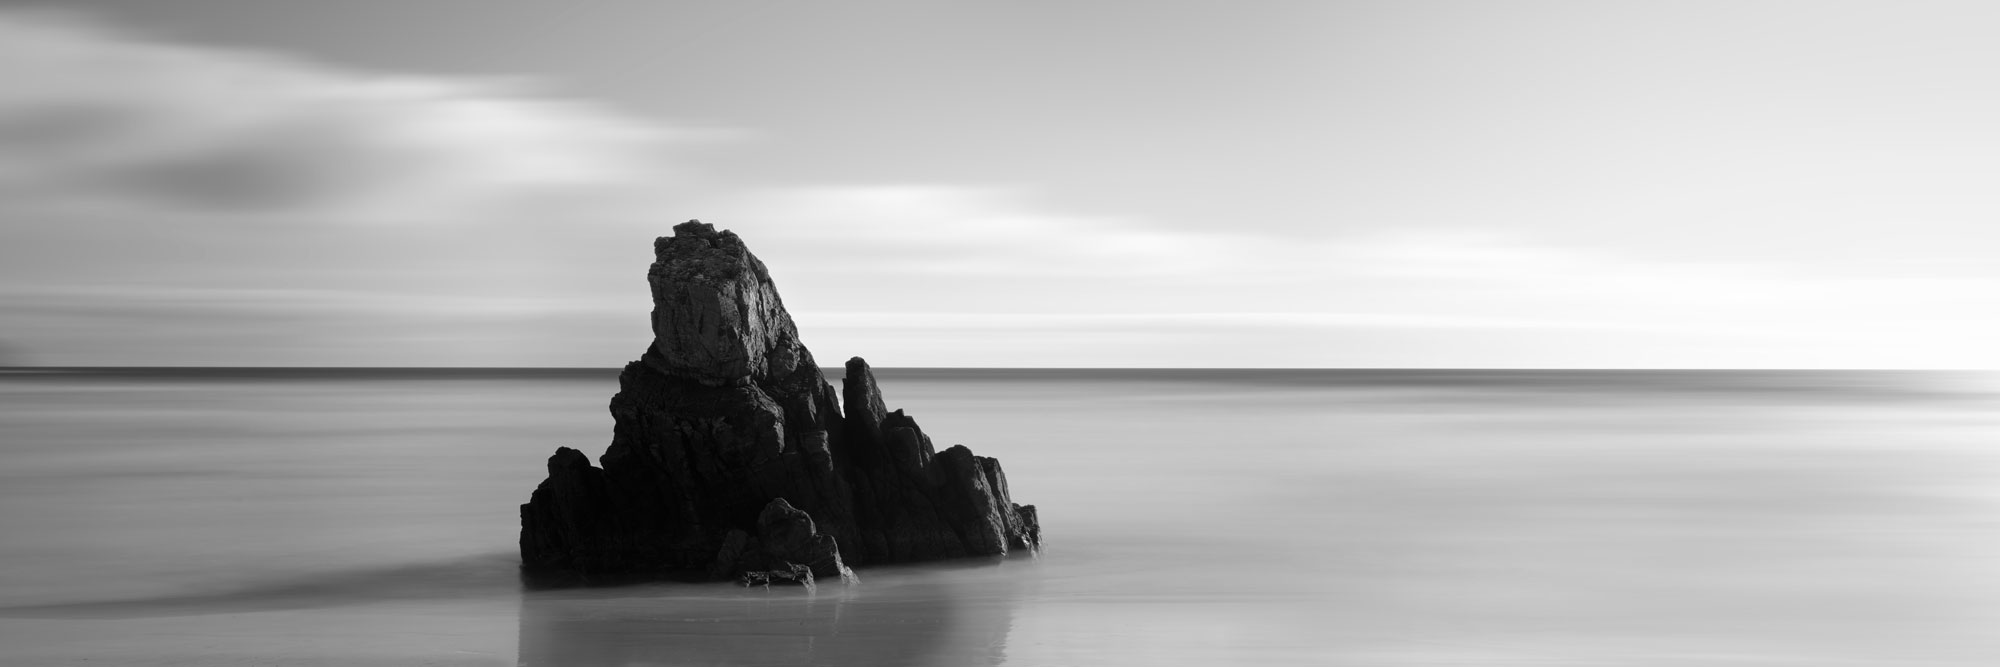 abstract Lone rock on a beach black and white